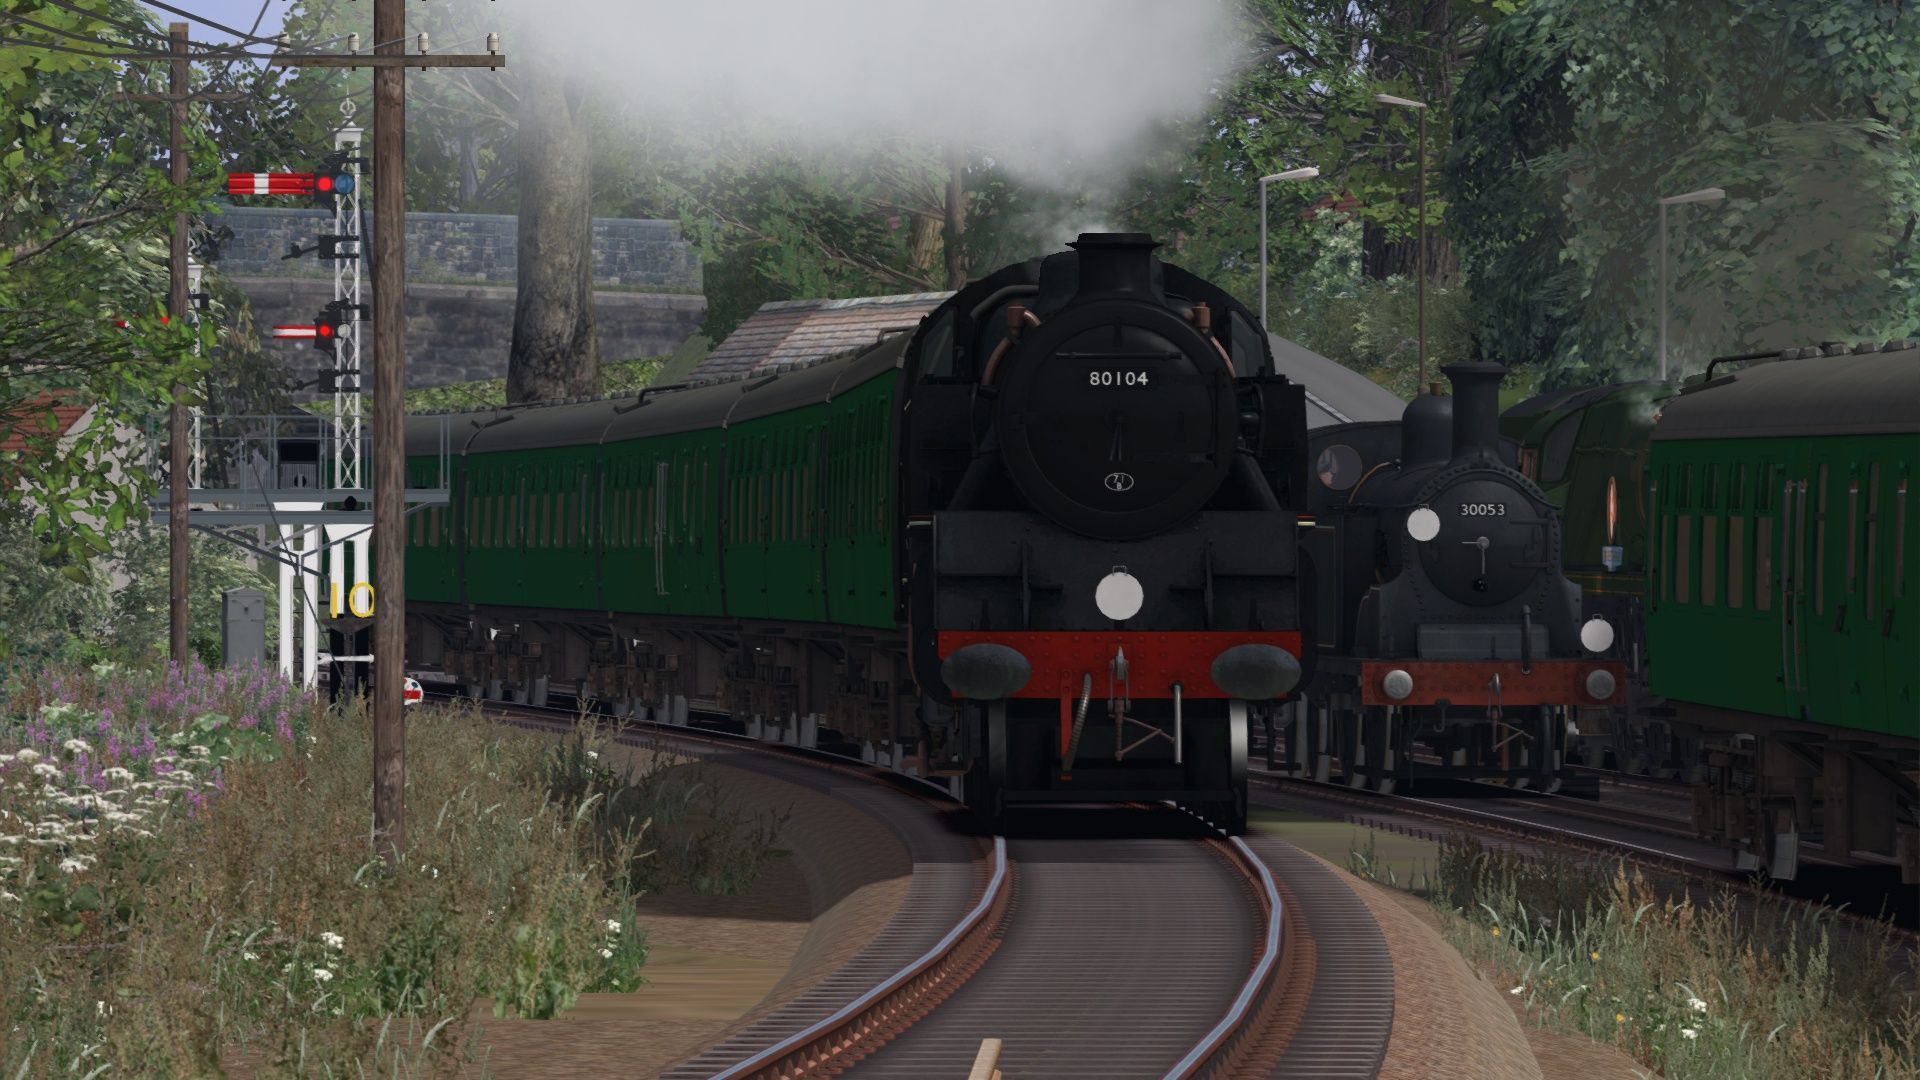 Screenshot_Swanage Railway_50.61034--1.96745_16-03-33